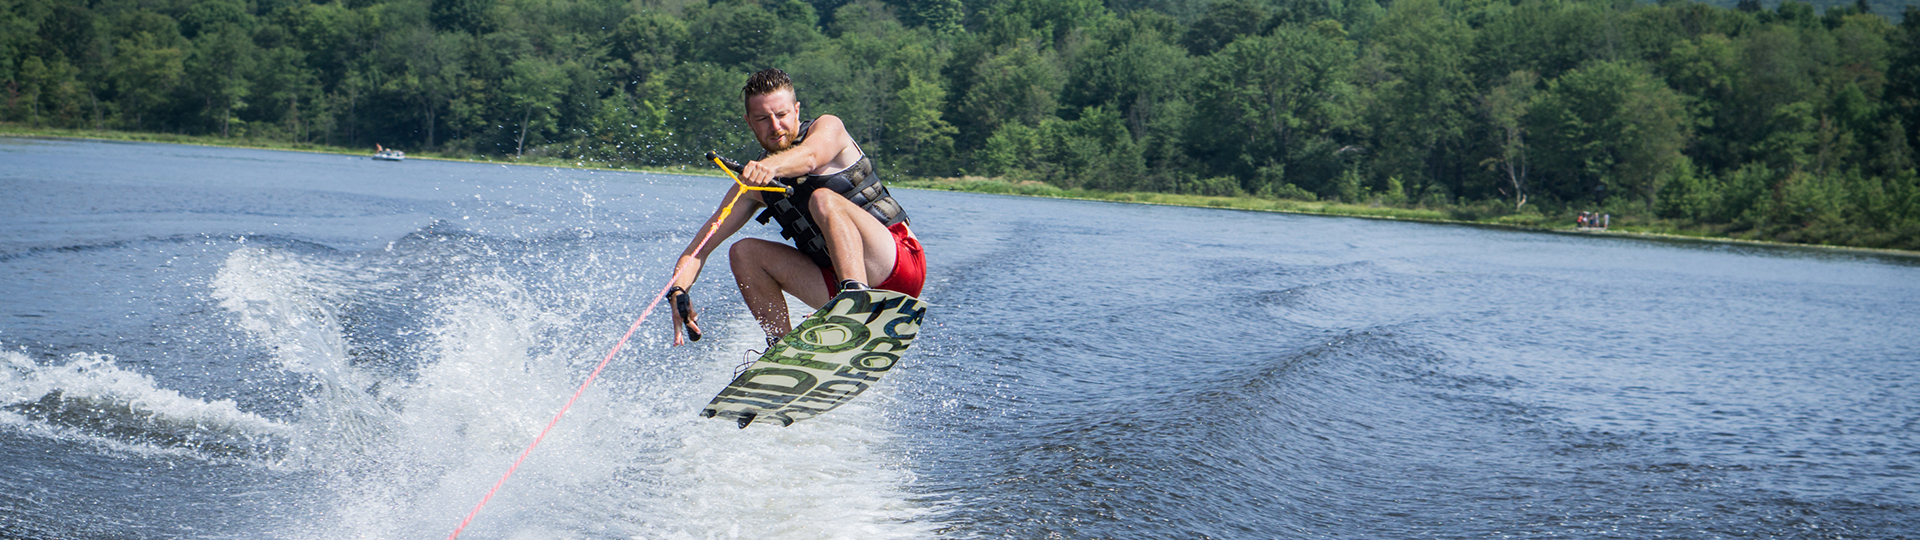 Create some waves at camp!